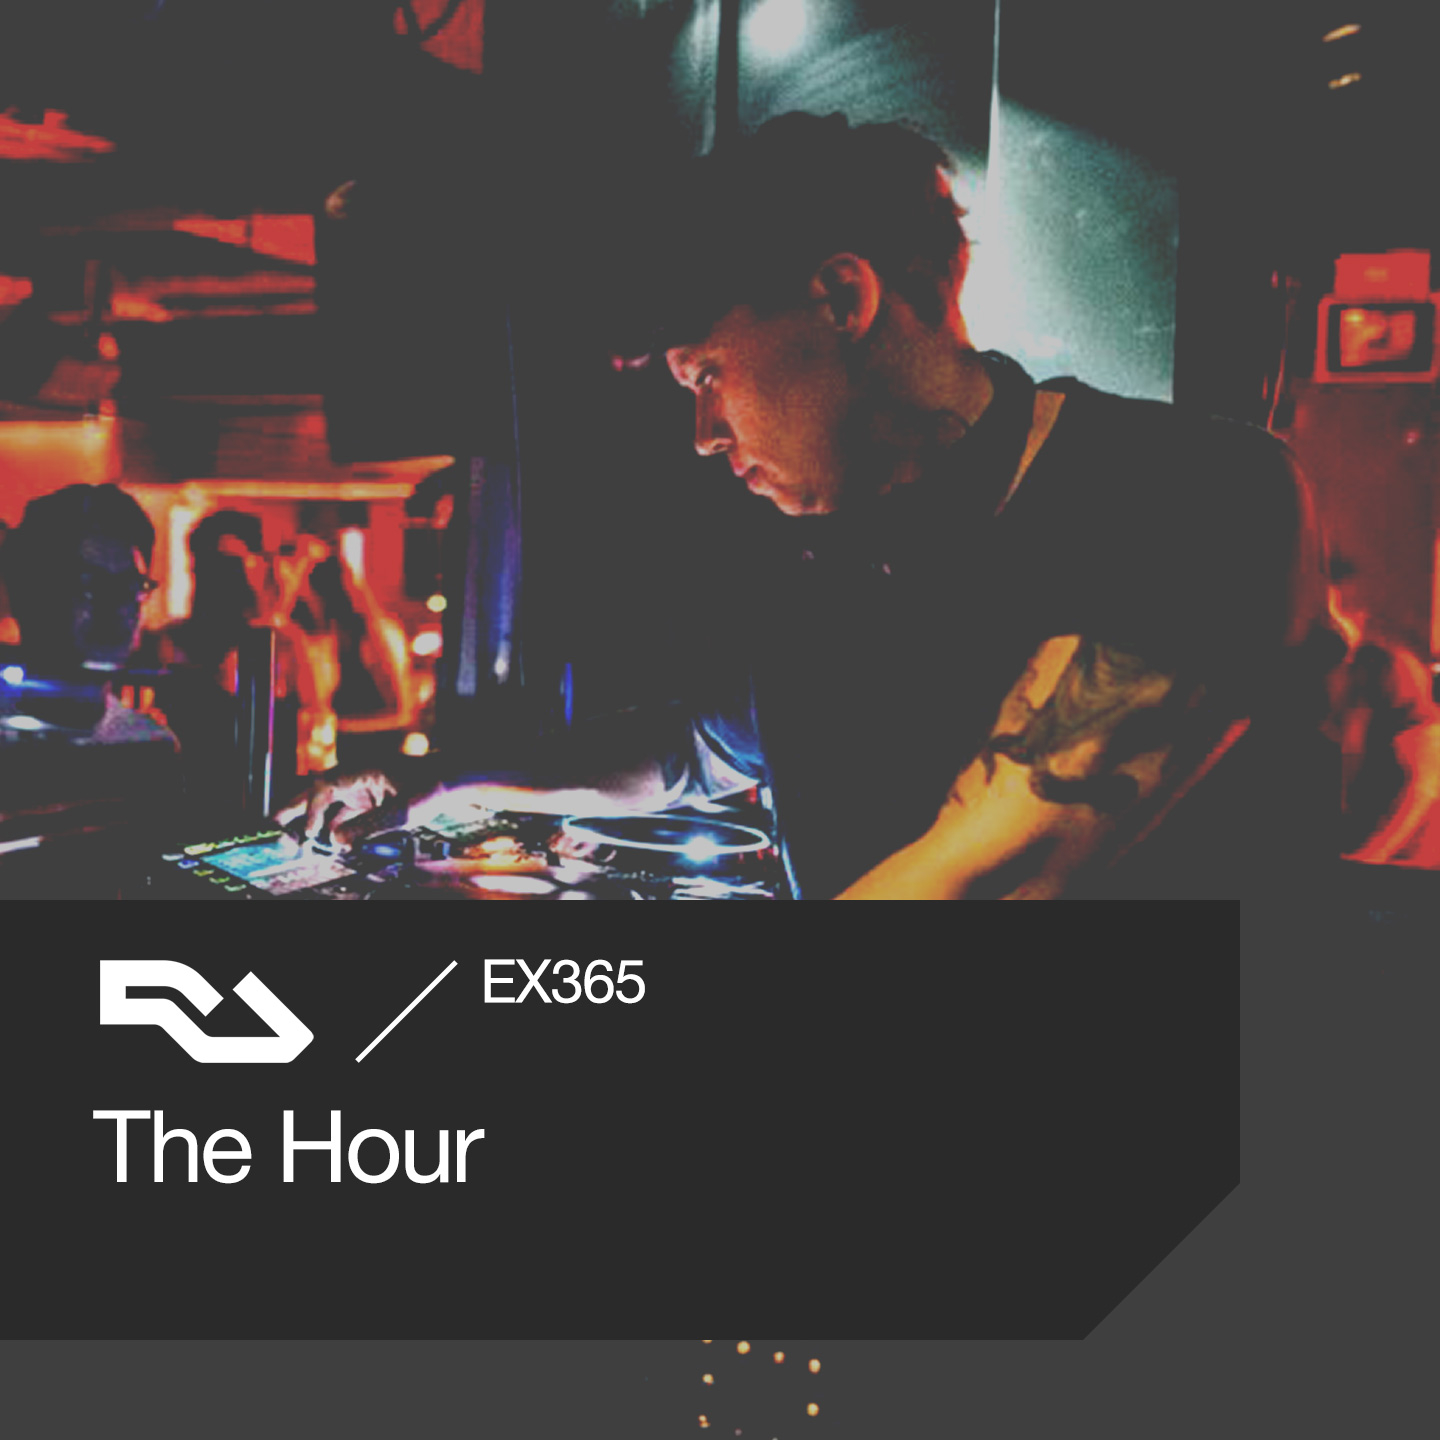 EX.365 The Hour: DJ's opening tracks, Jeff Mills, Macao